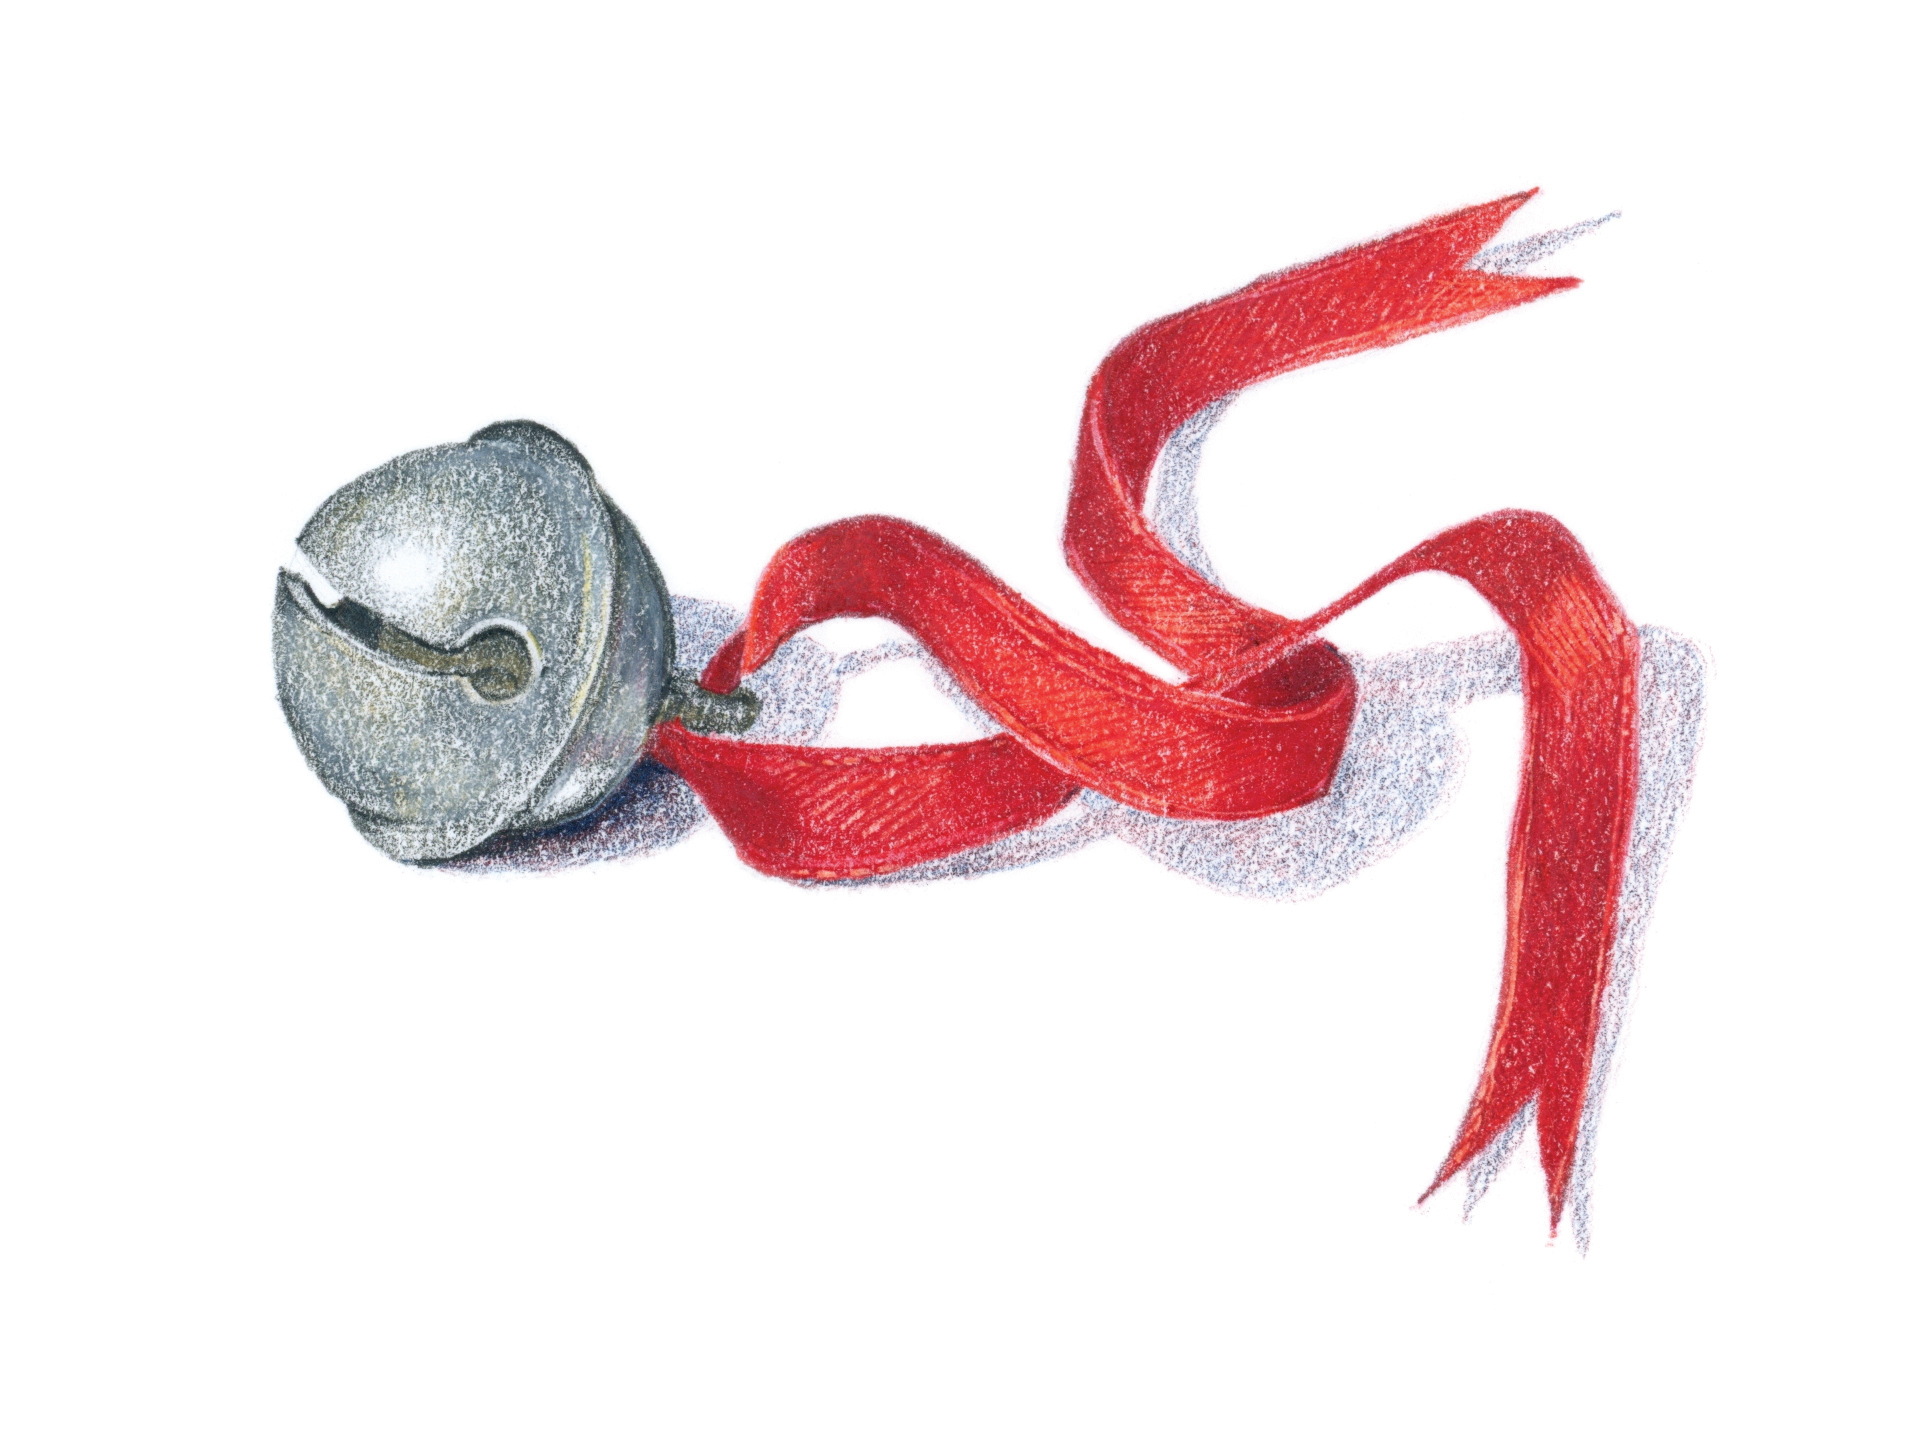 Sleigh bell - colored pencil